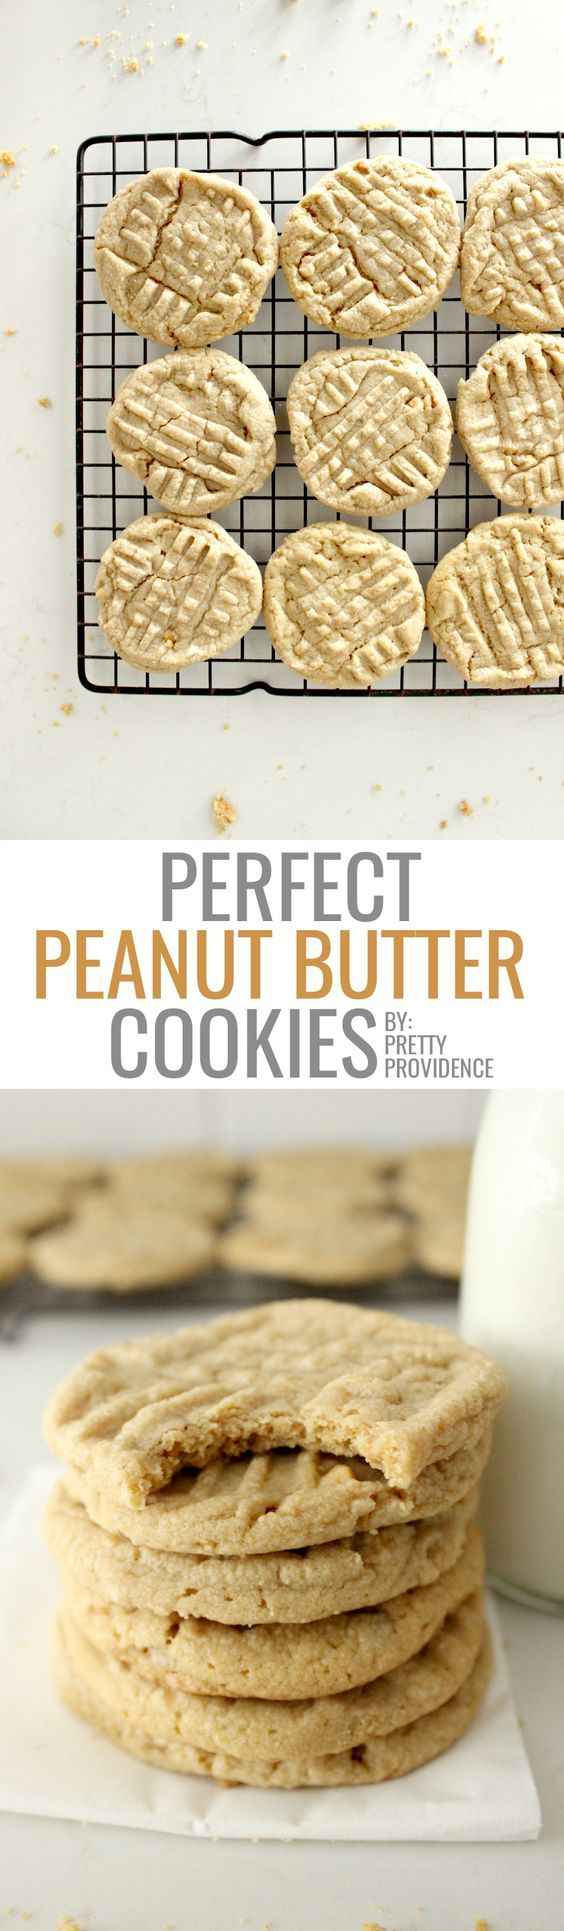 Literally THE BEST peanut butter cookies you will ever taste! You probably have everything you need to make them in your pantry, they are super easy, and the recipe yields a ton!: